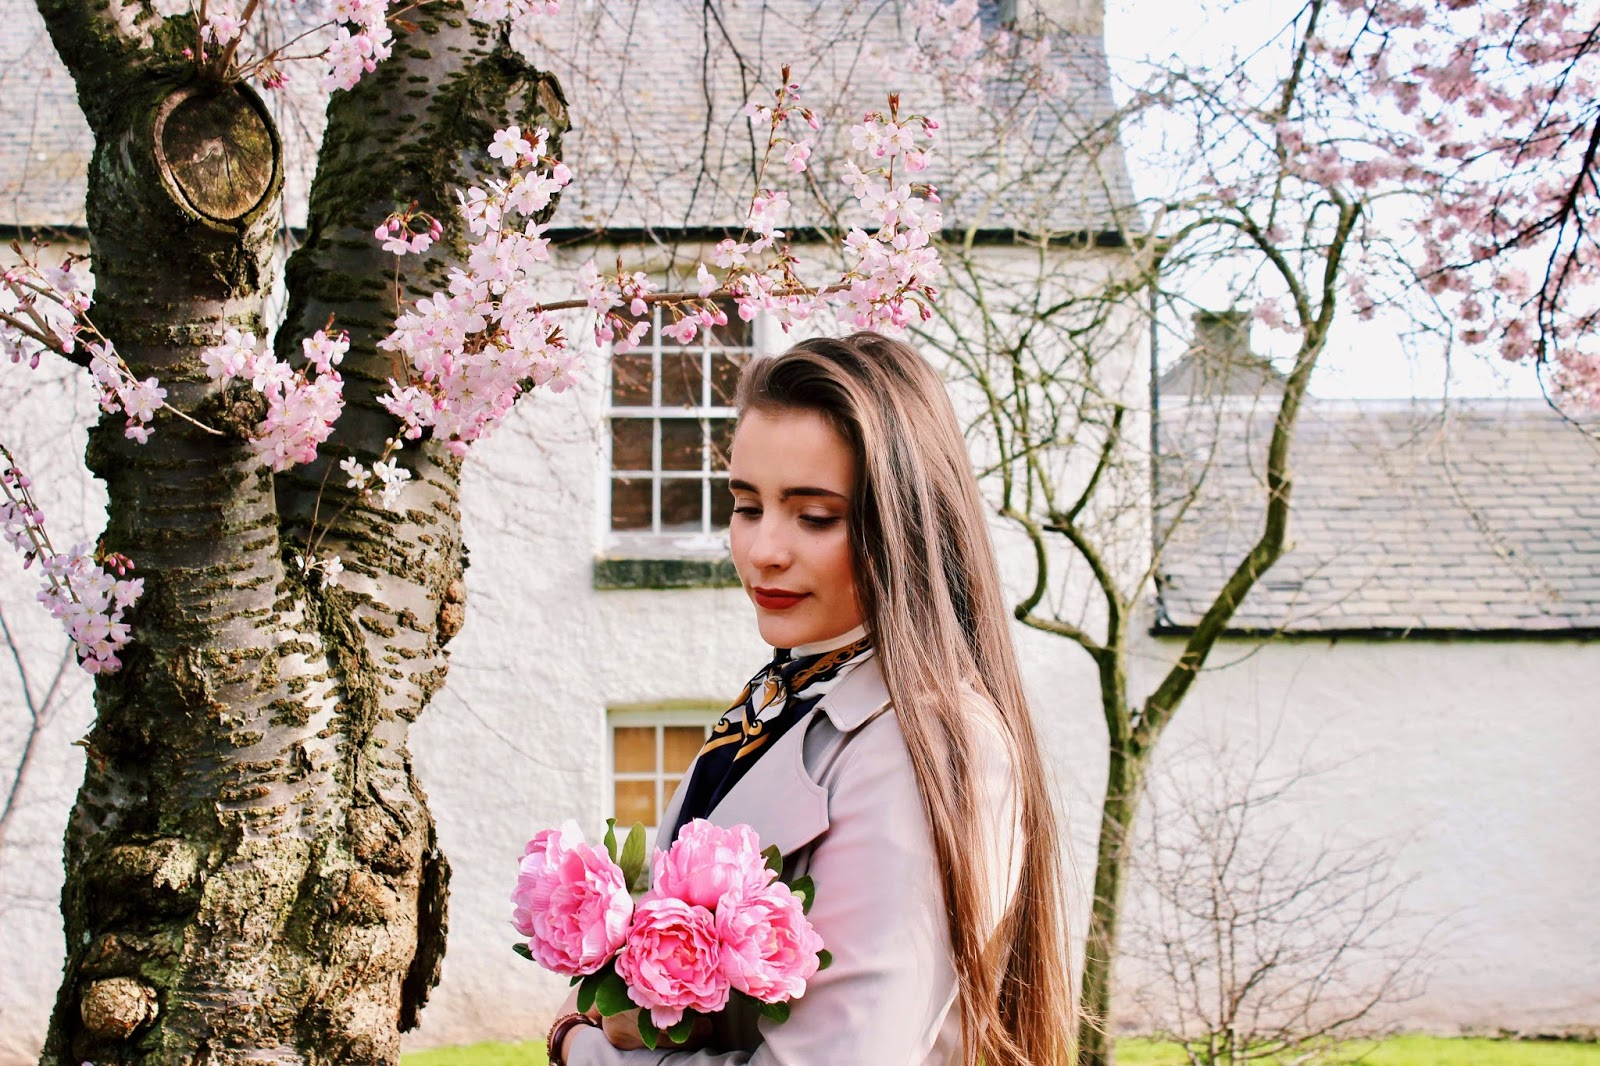 Girl under blooming cherry tree with flowers